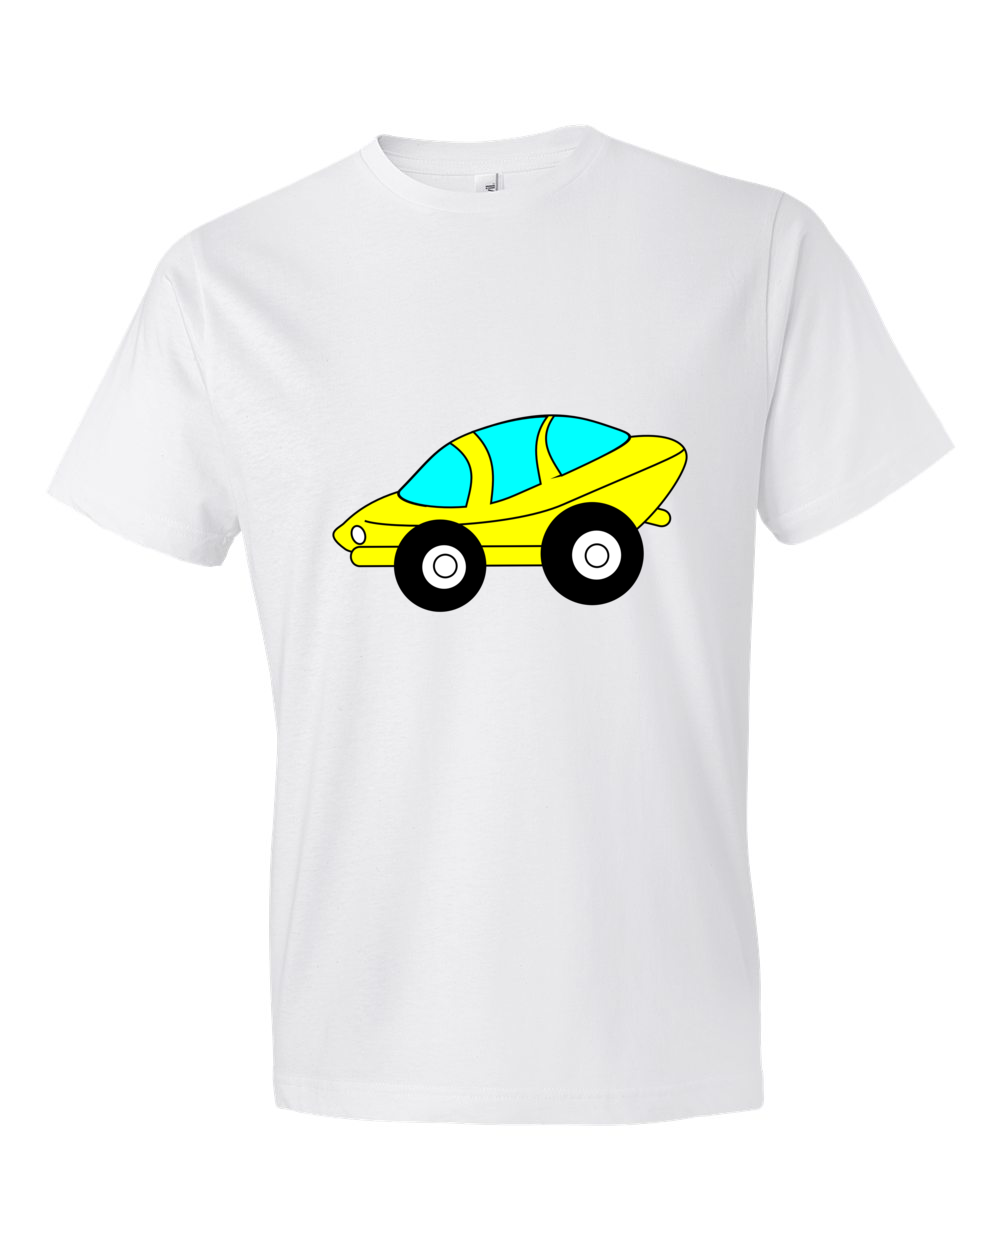 Car-Lightweight-Fashion-Short-Sleeve-T-Shirt-by-iTEE.com